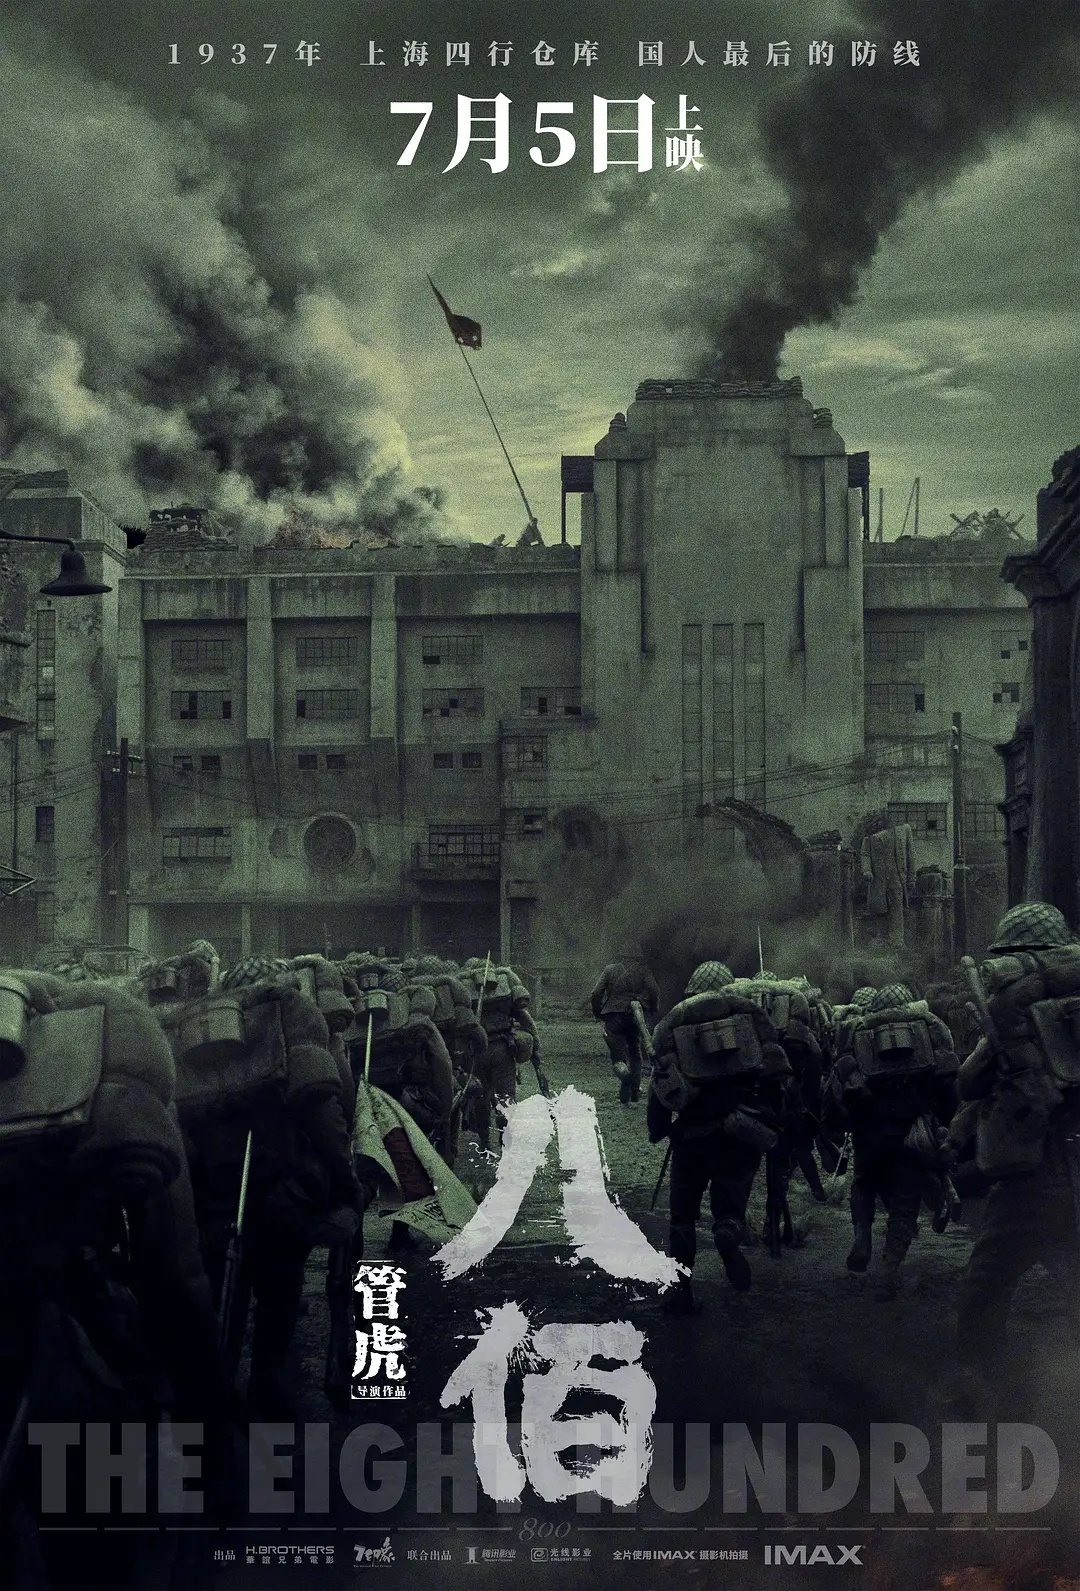 From the acclaimed filmmaker behind Mr. Six comes a riveting war epic. In 1937, eight hundred Chinese soldiers fight under siege from a warehouse in the middle of the Shanghai battlefield, completely surrounded by the Japanese army.